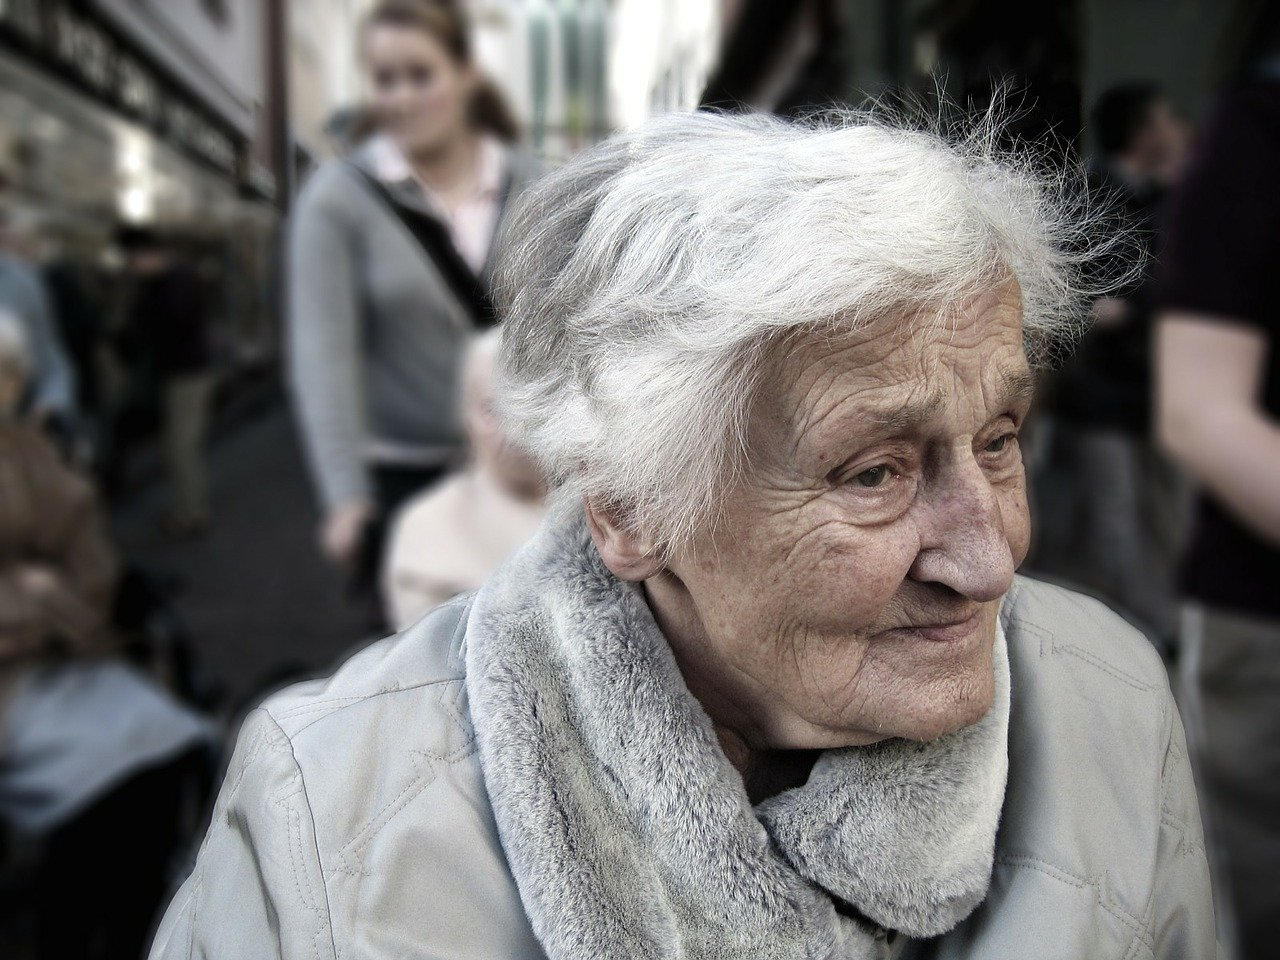 A close-up of an older woman with other people behind her | Photo: Pixabay/Gerd Altmann